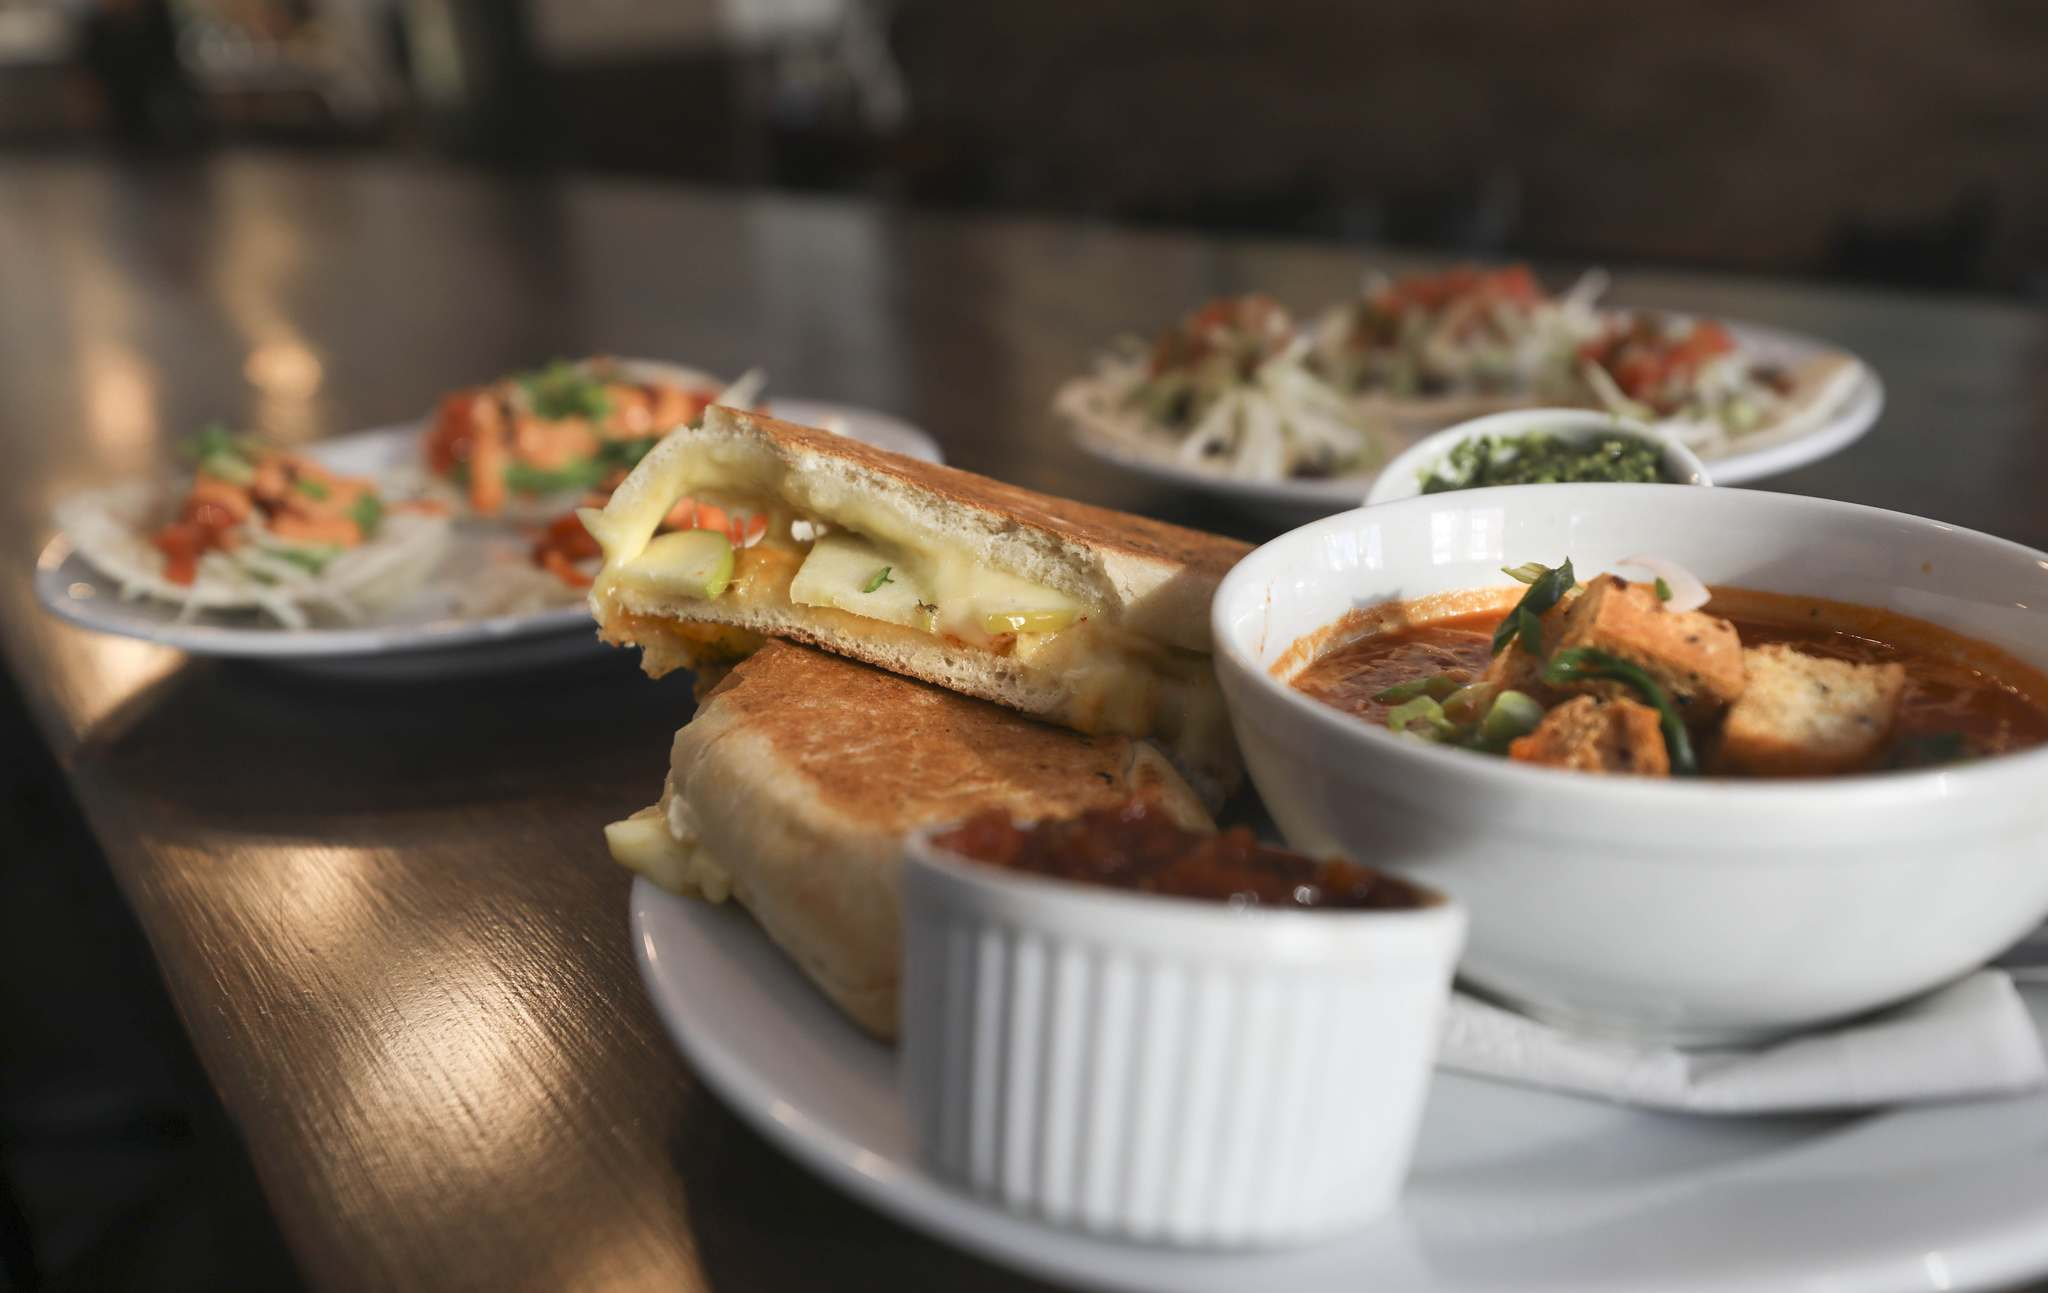 The modest but comfortable Ruby West features an eclectic menu of familiar foods, including tomato soup with an 'Adult Grilled Cheese Sandwich,' which combines Swiss and Muenster cheeses.</p>